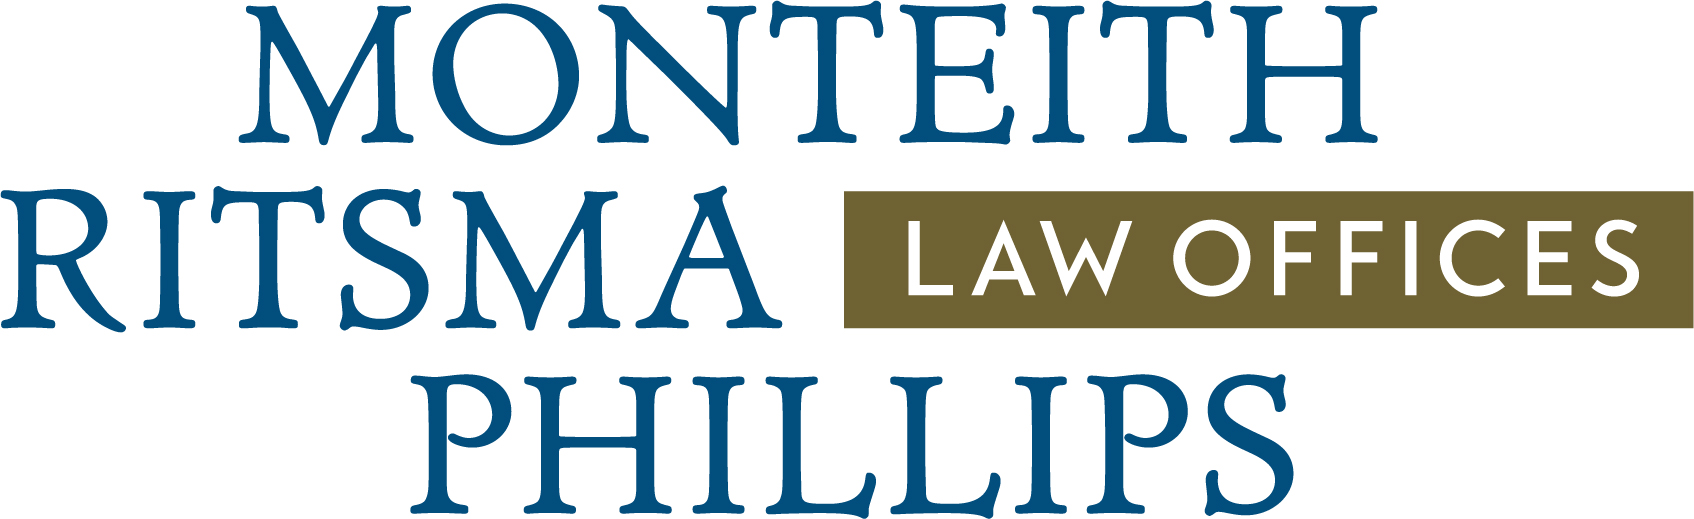 Monteith Ritsma Phillips Professional Corporation